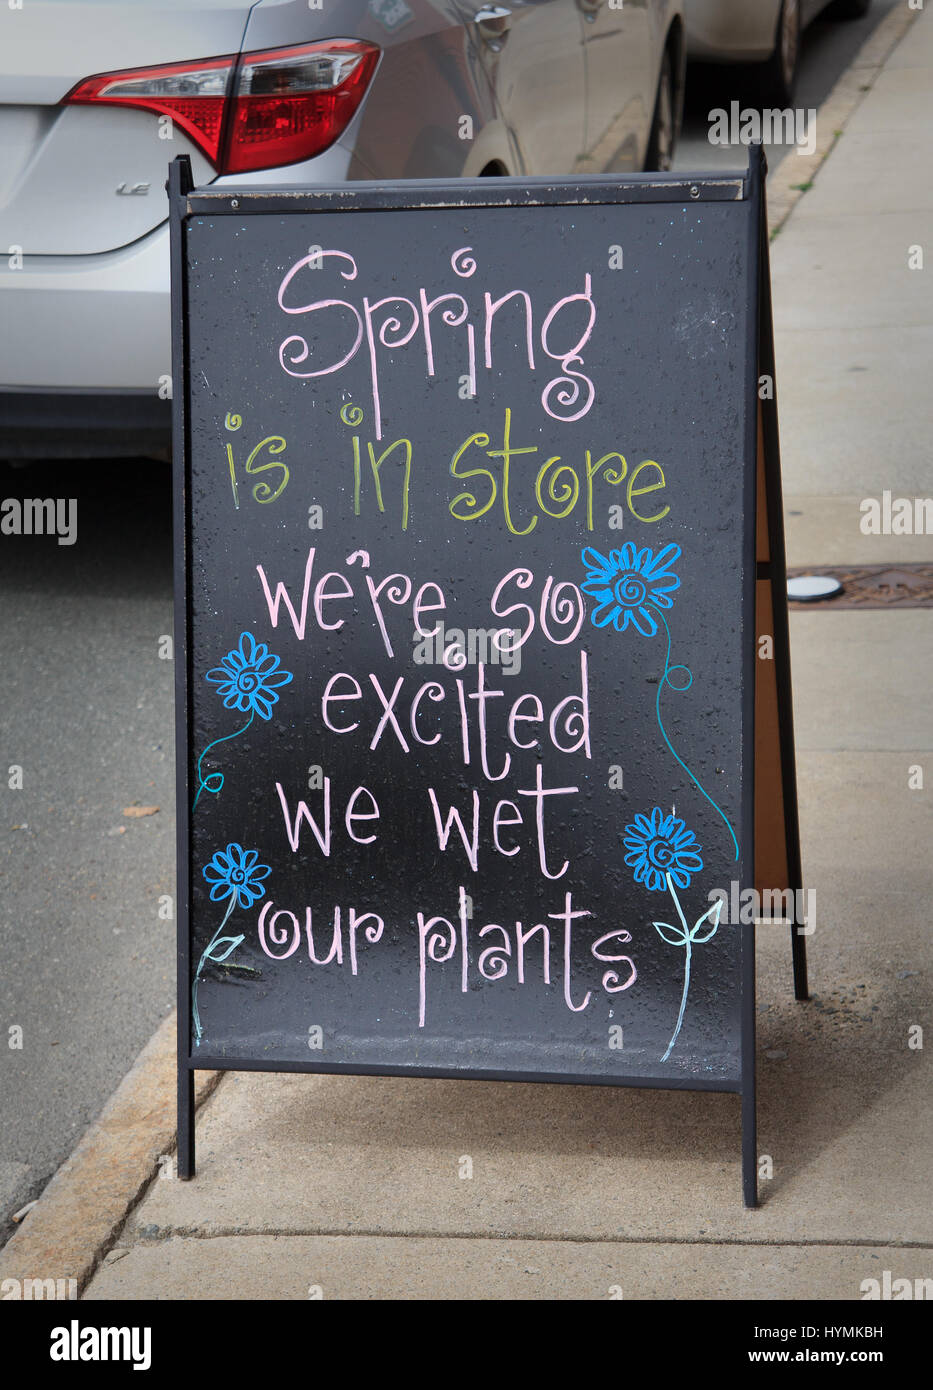 Humorous sign on street spring is here we're so excited we wet our plants - Stock Image